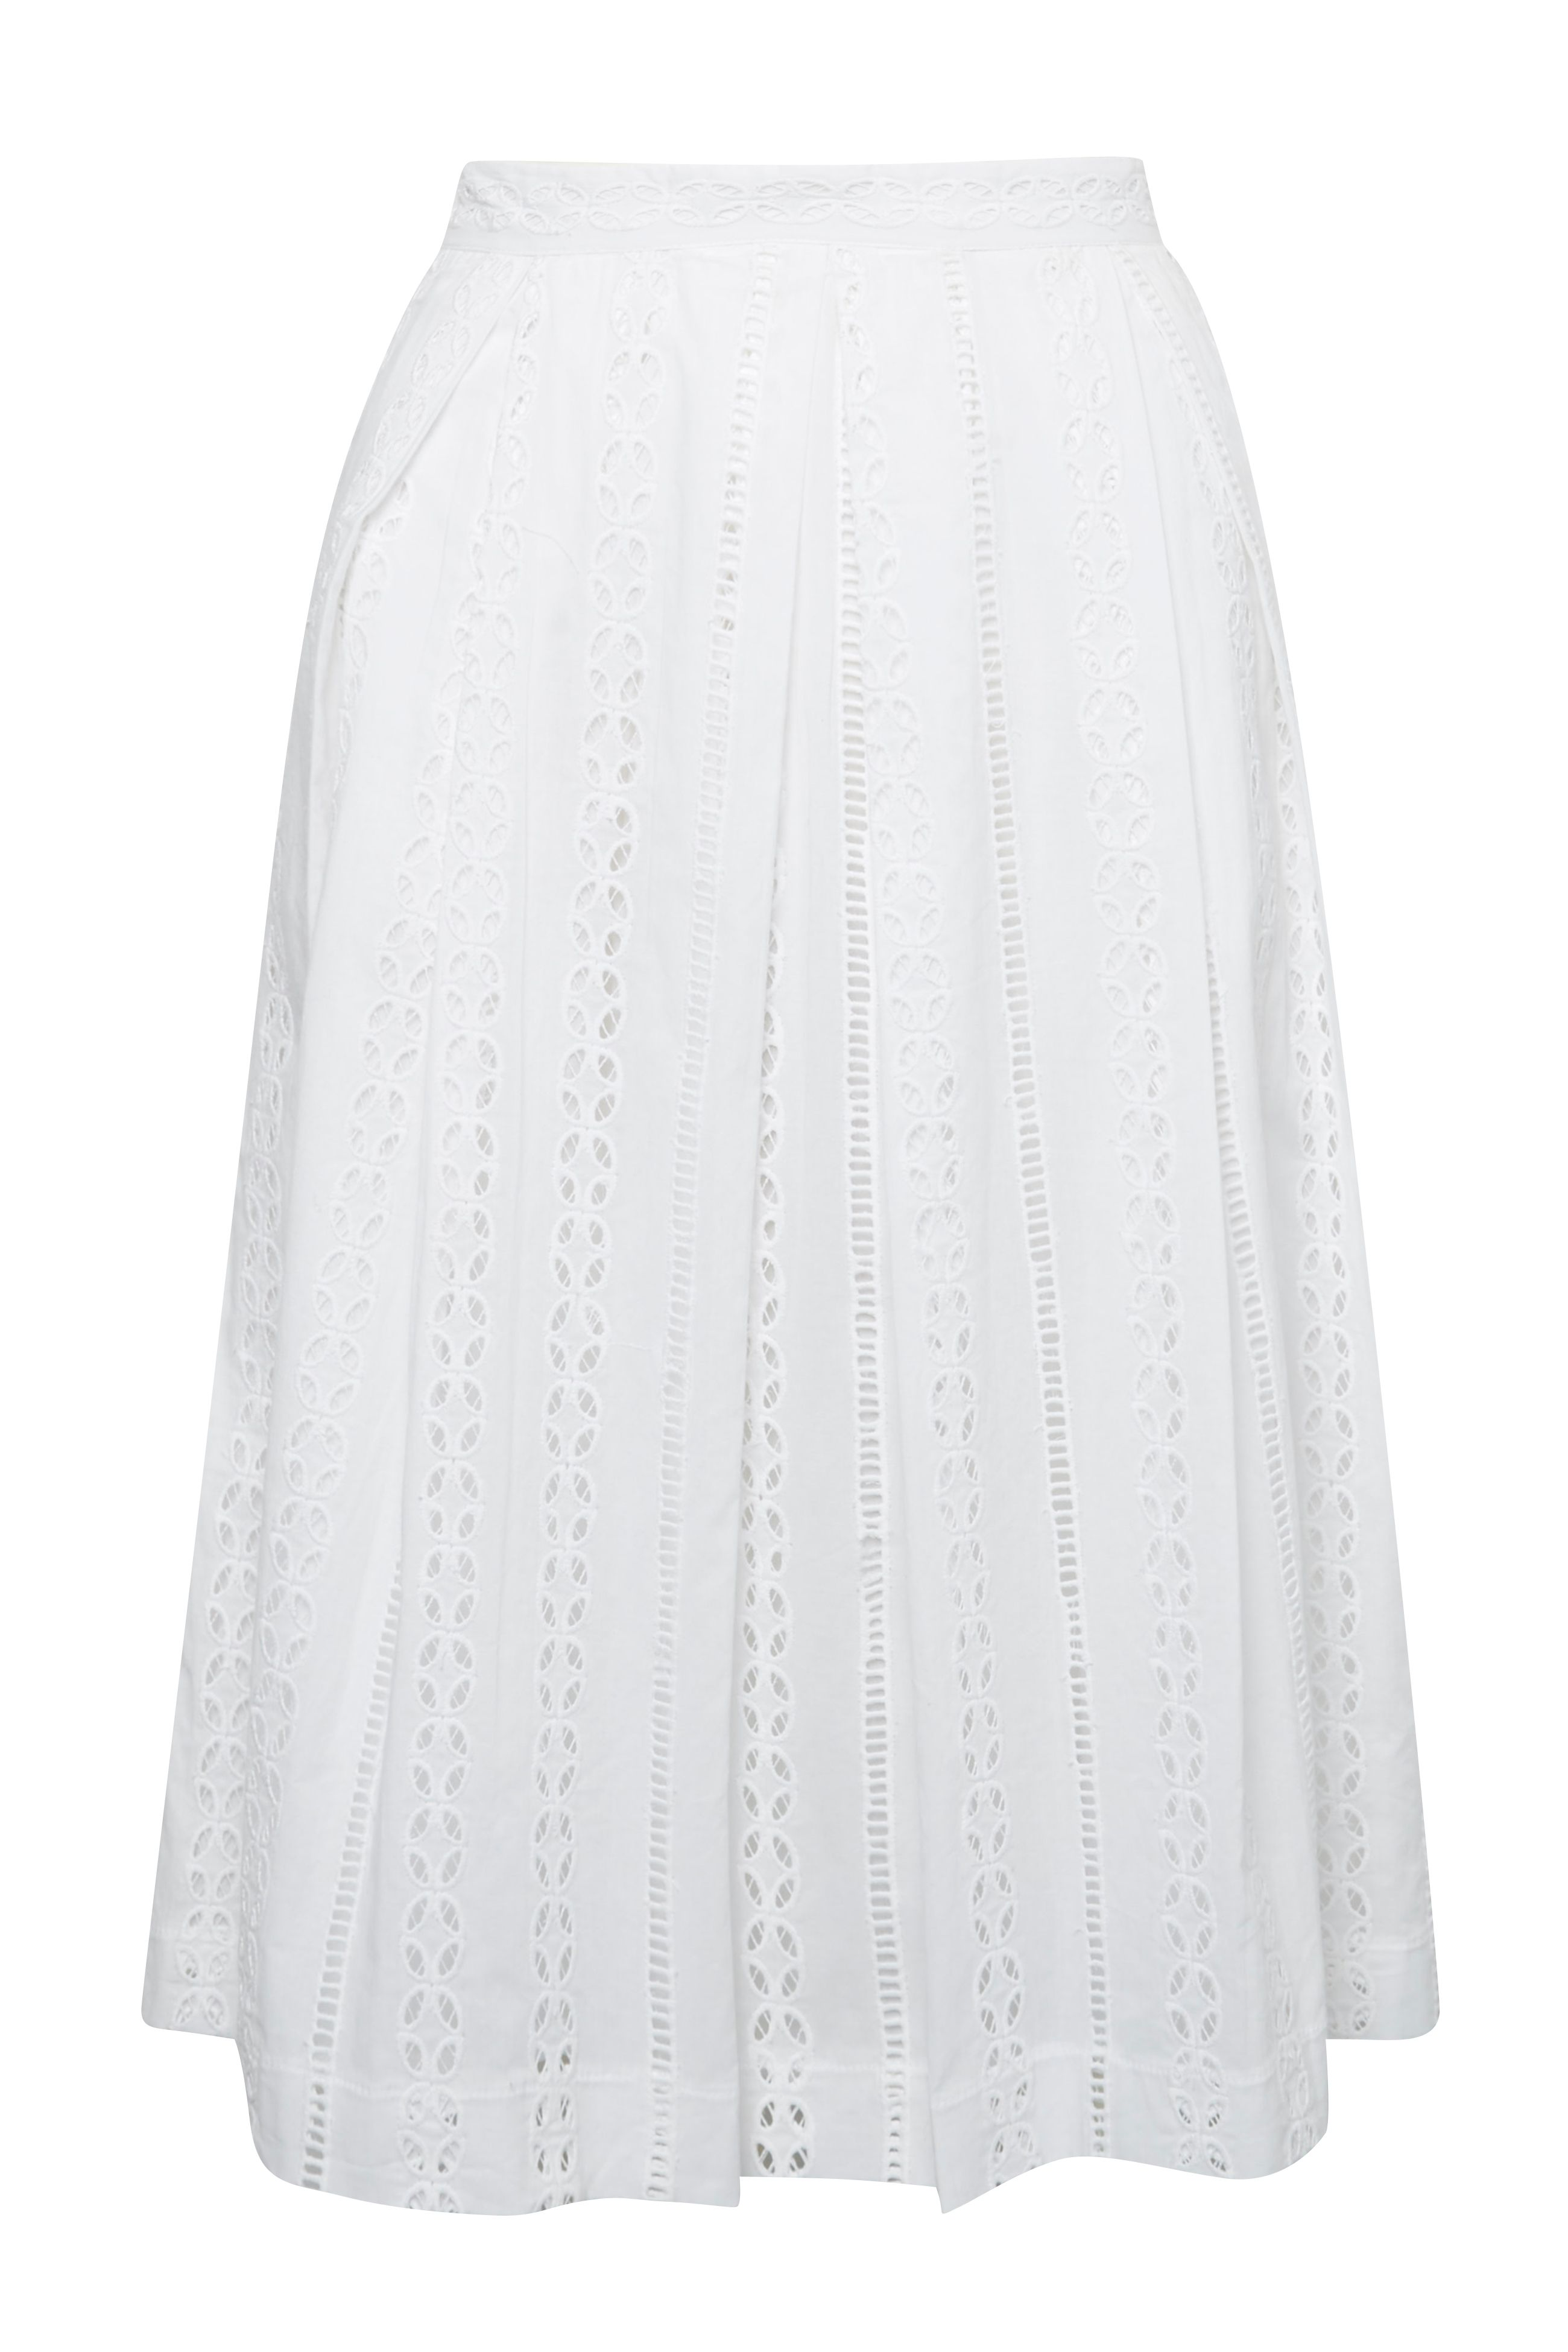 Great Plains Betsy Broidery Flared Skirt, Optic White